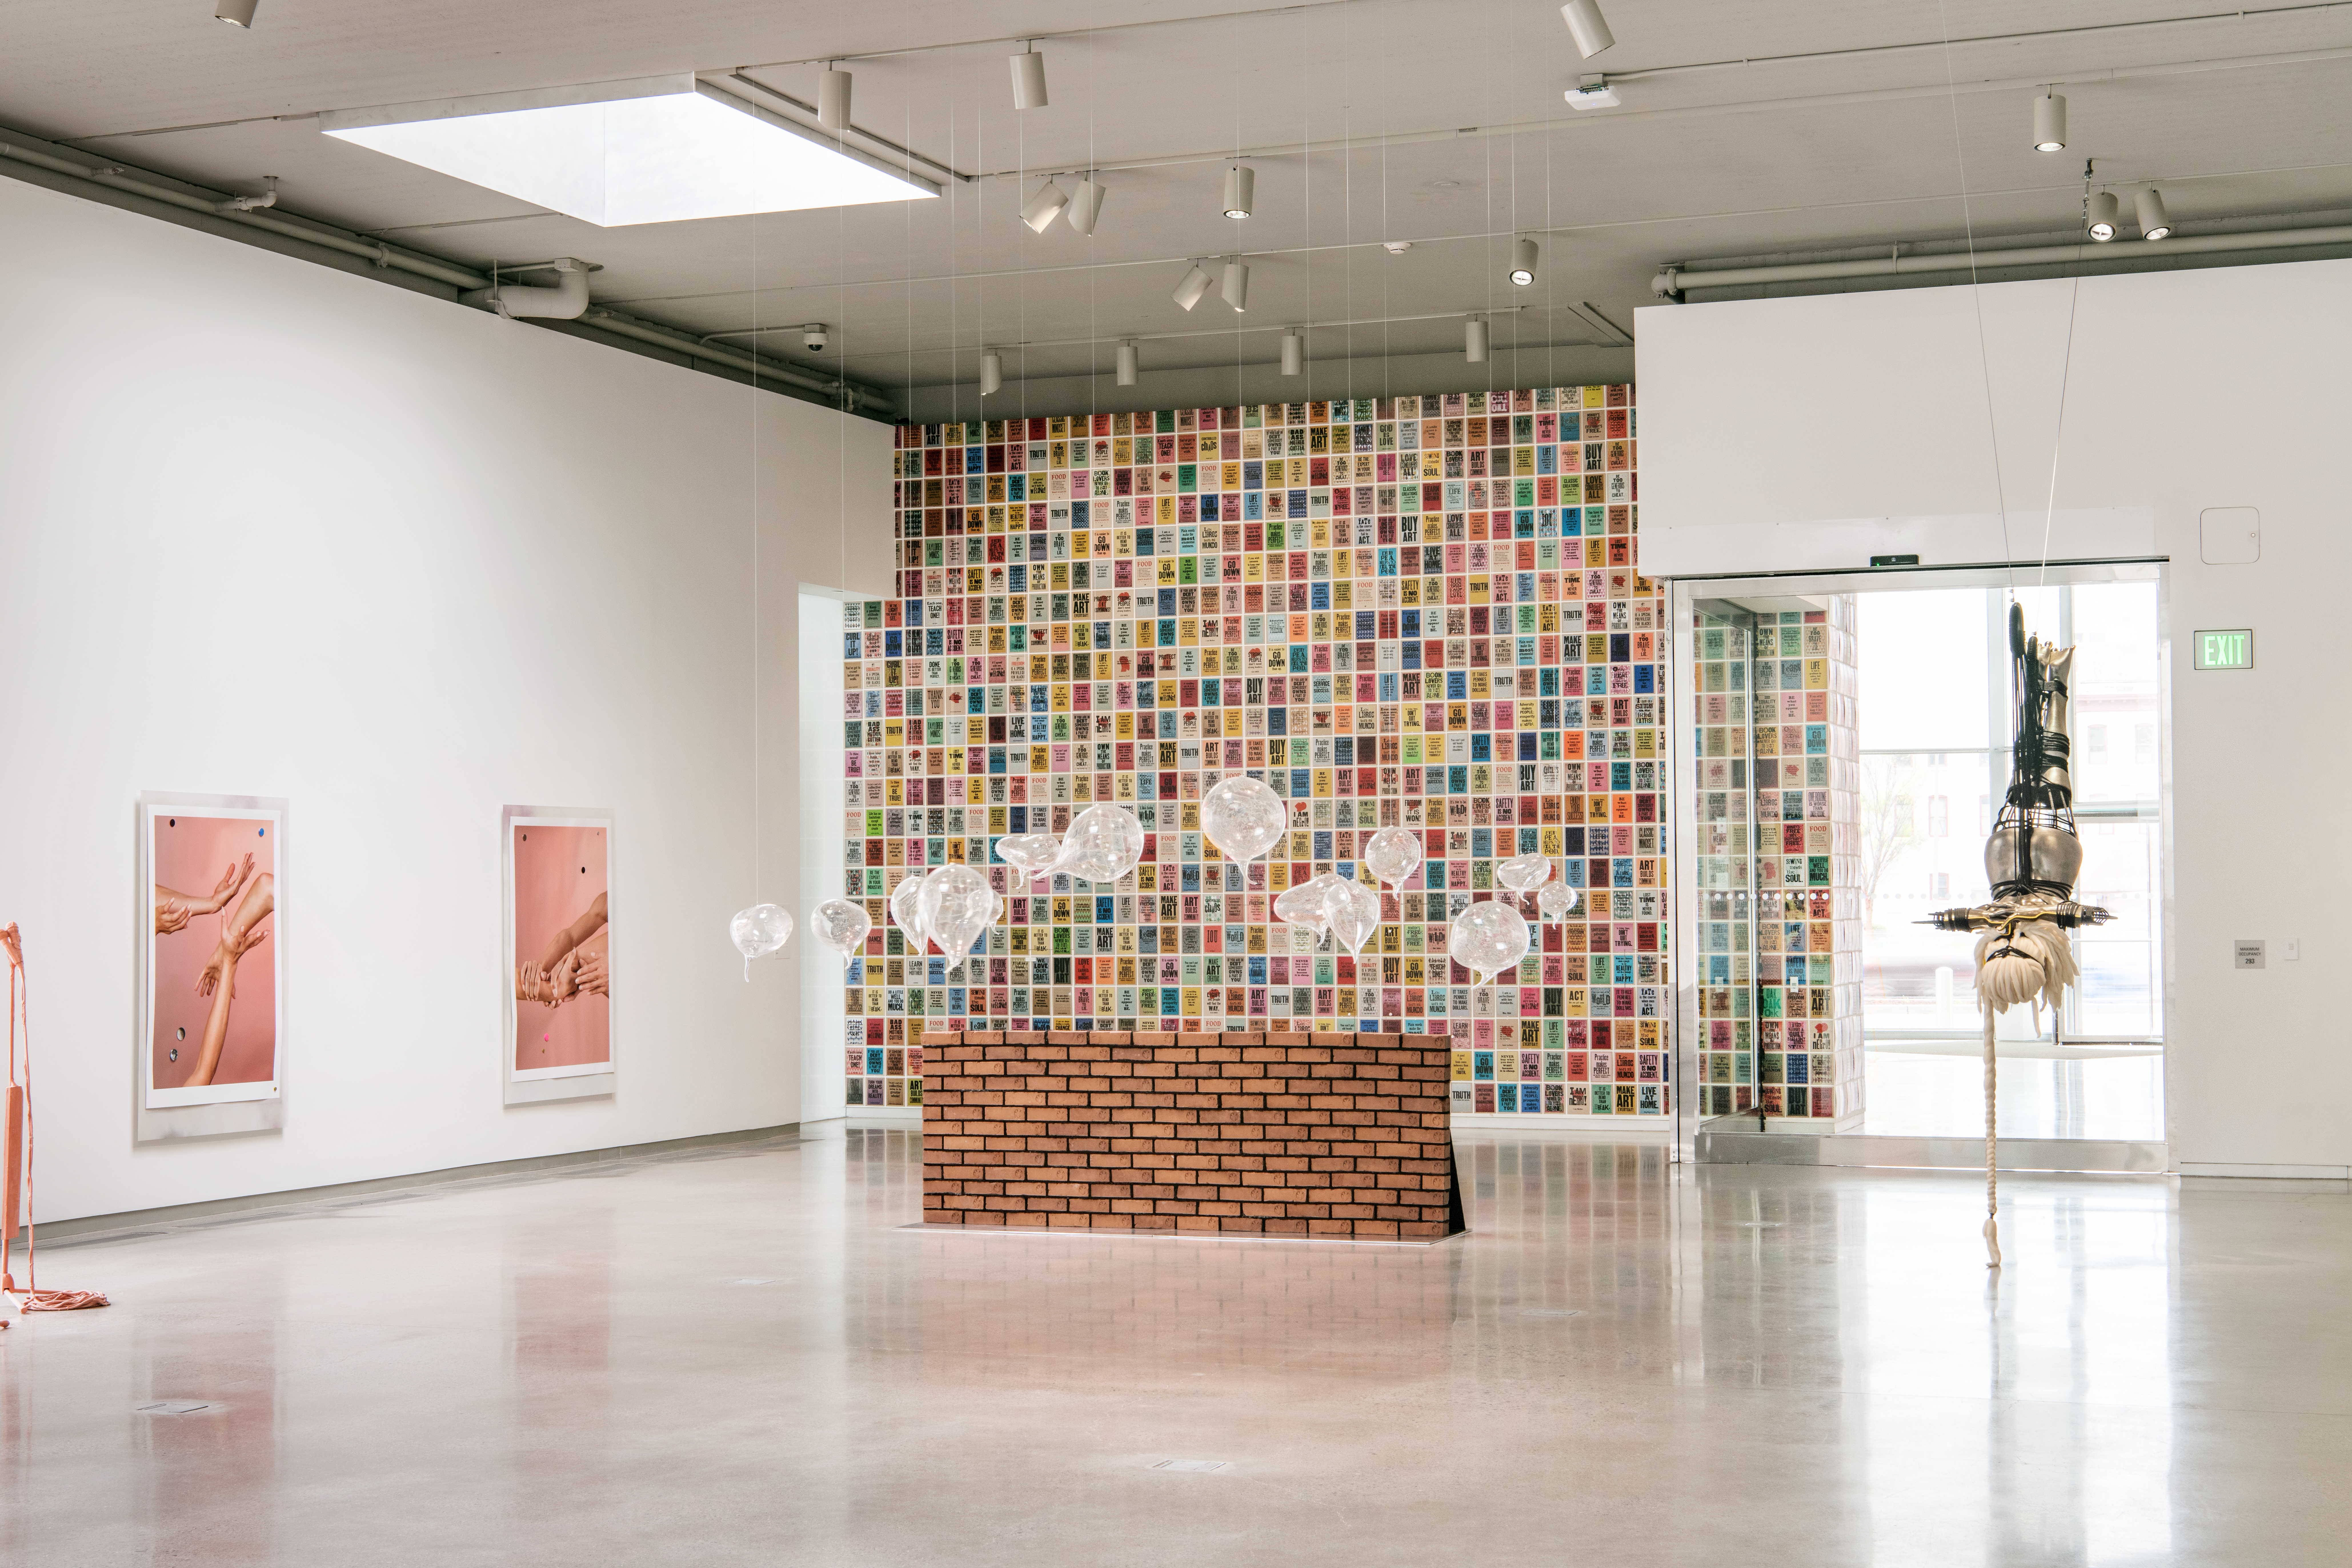 <p>Beeld Terry Brown. Insitute for Contemporary Art, Richmond (VS) – Steven Holl Architects</p>